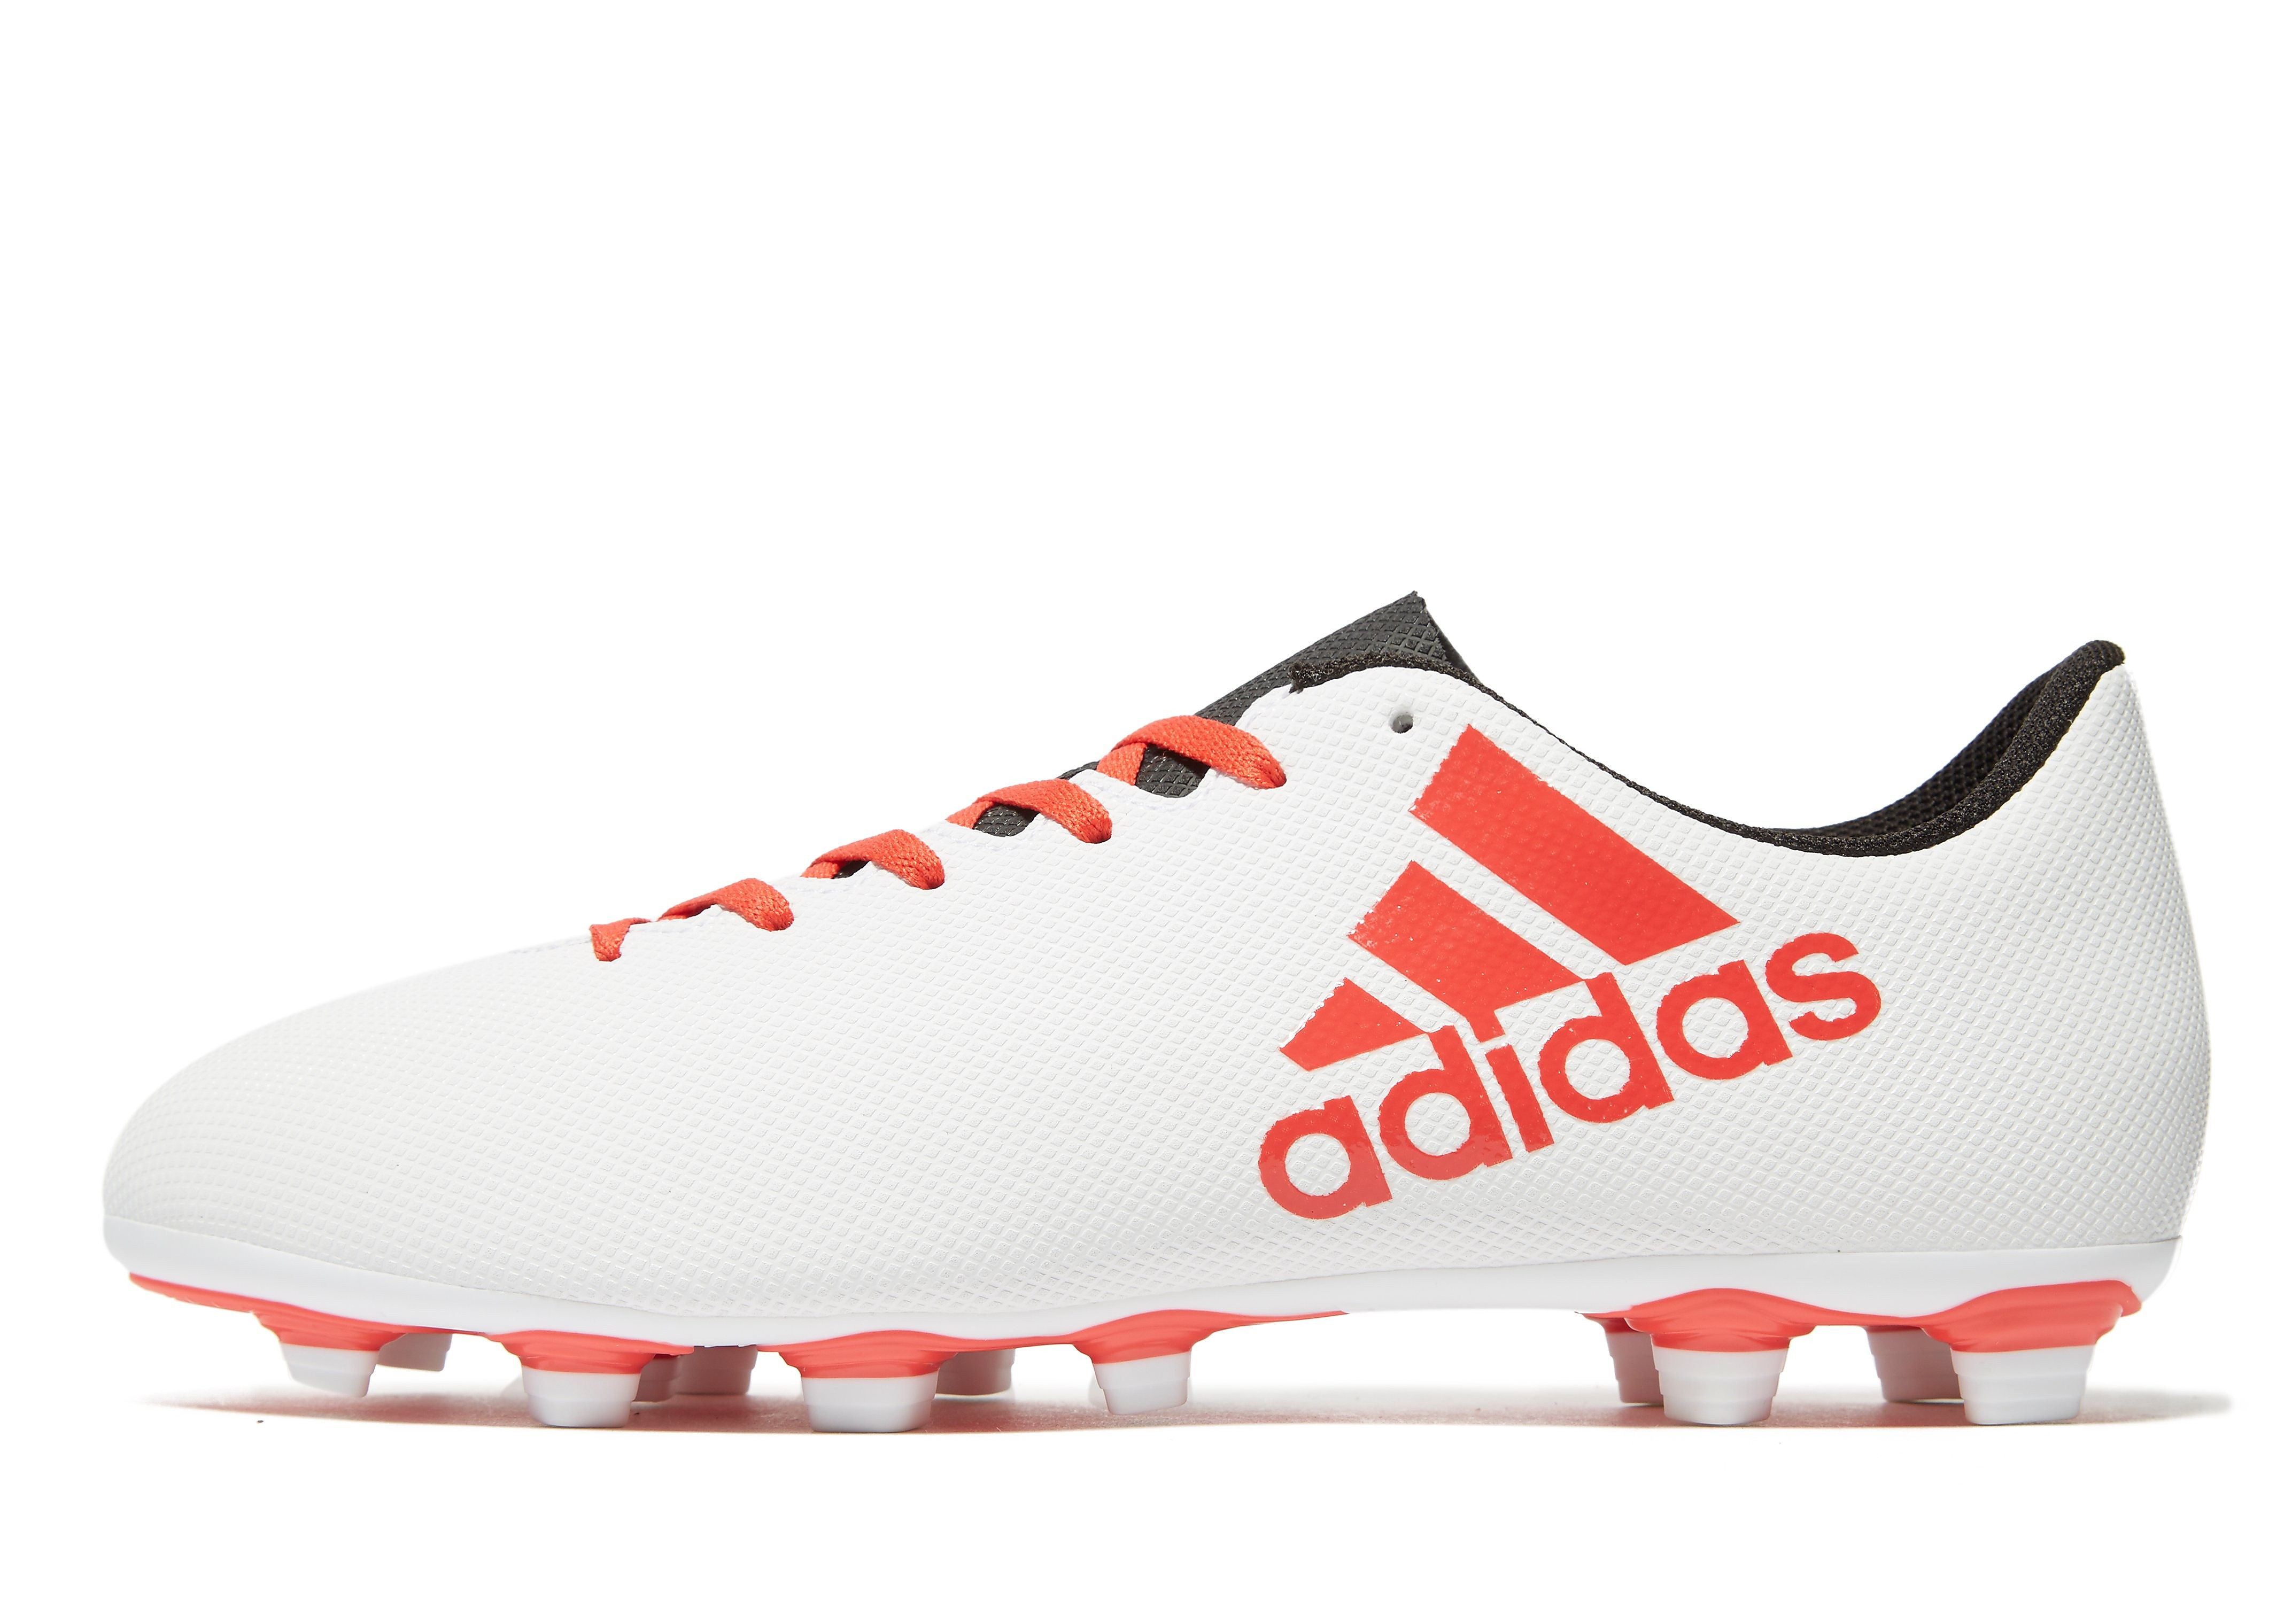 adidas Cold Blooded X 17.4 FG